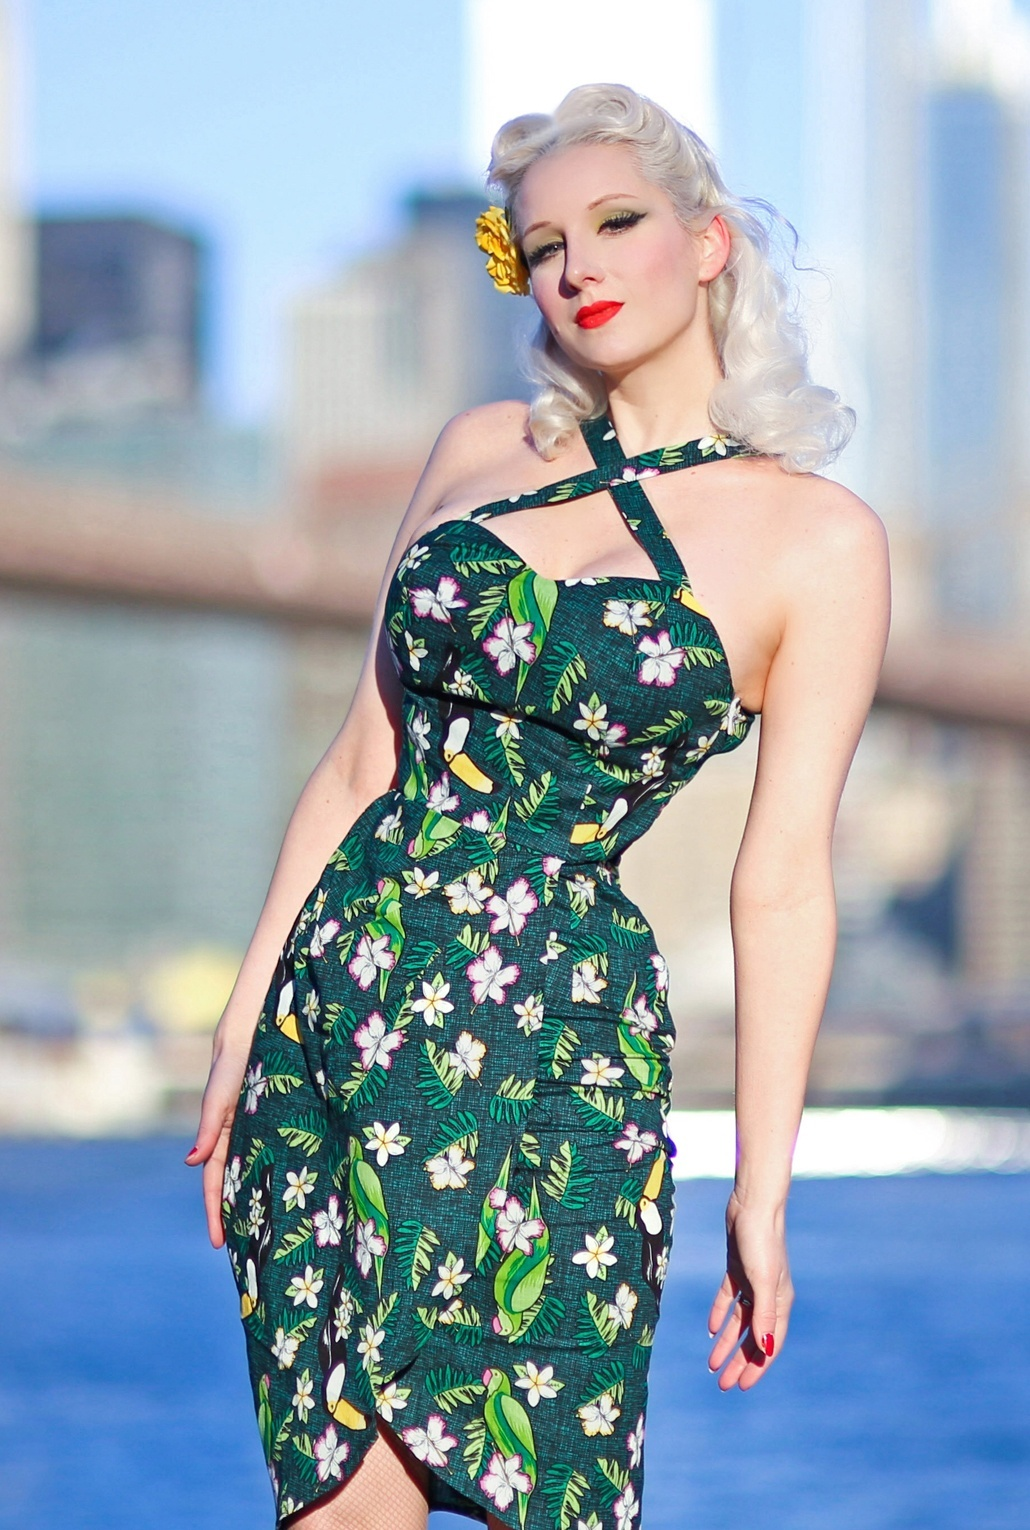 1950s Fashion History: Women's Clothing 50s Mahina Tropical Bird Sarong Dress in Green £48.28 AT vintagedancer.com